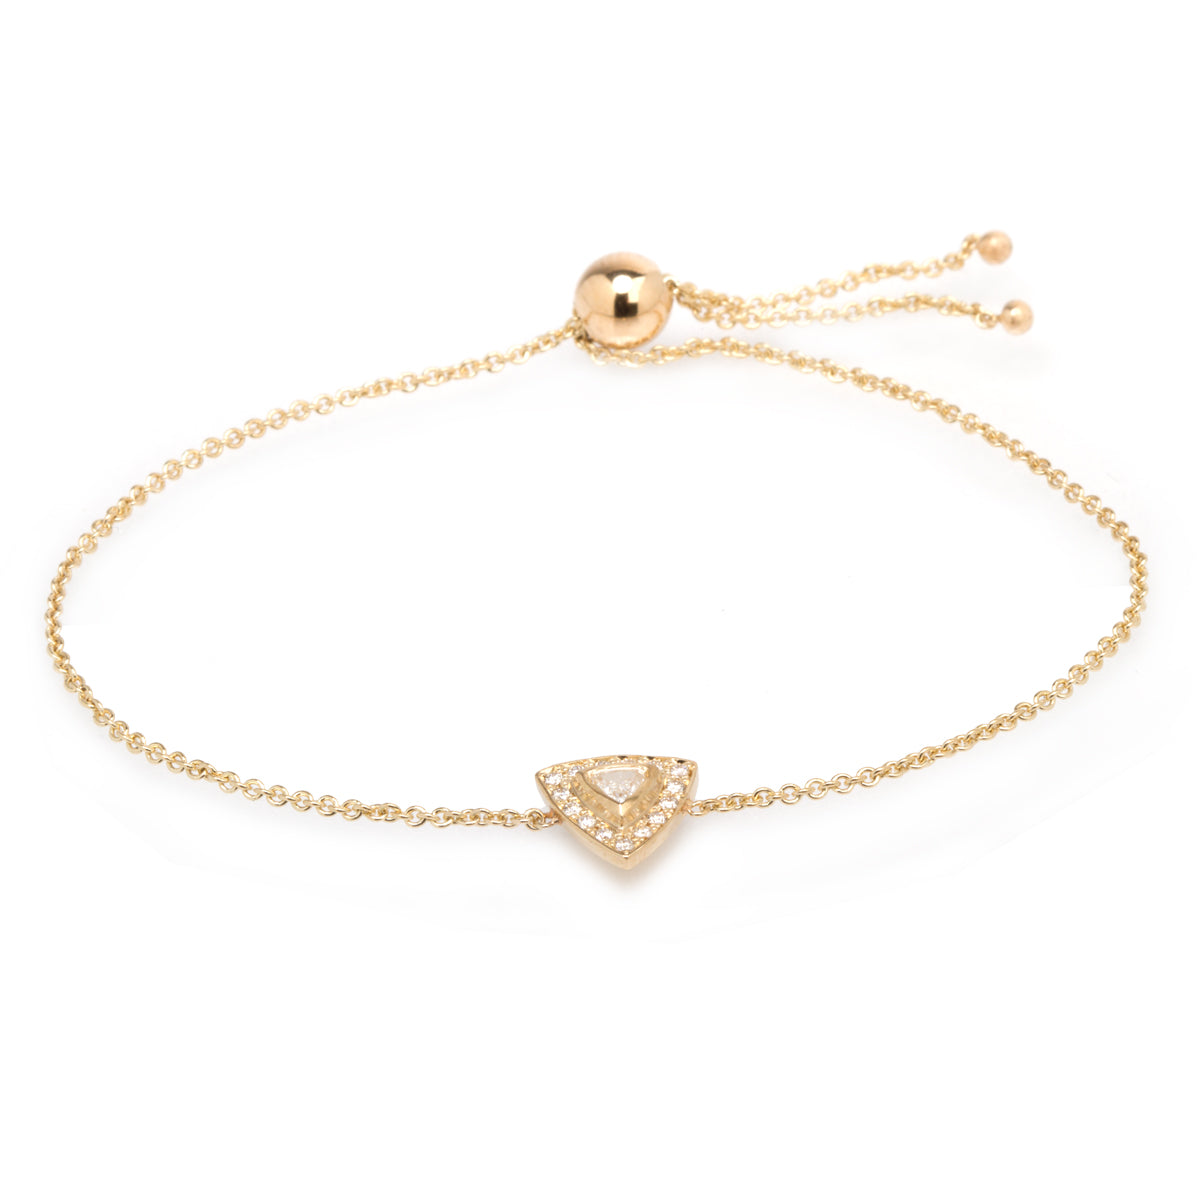 14k halo bolo bracelet with trillion diamond